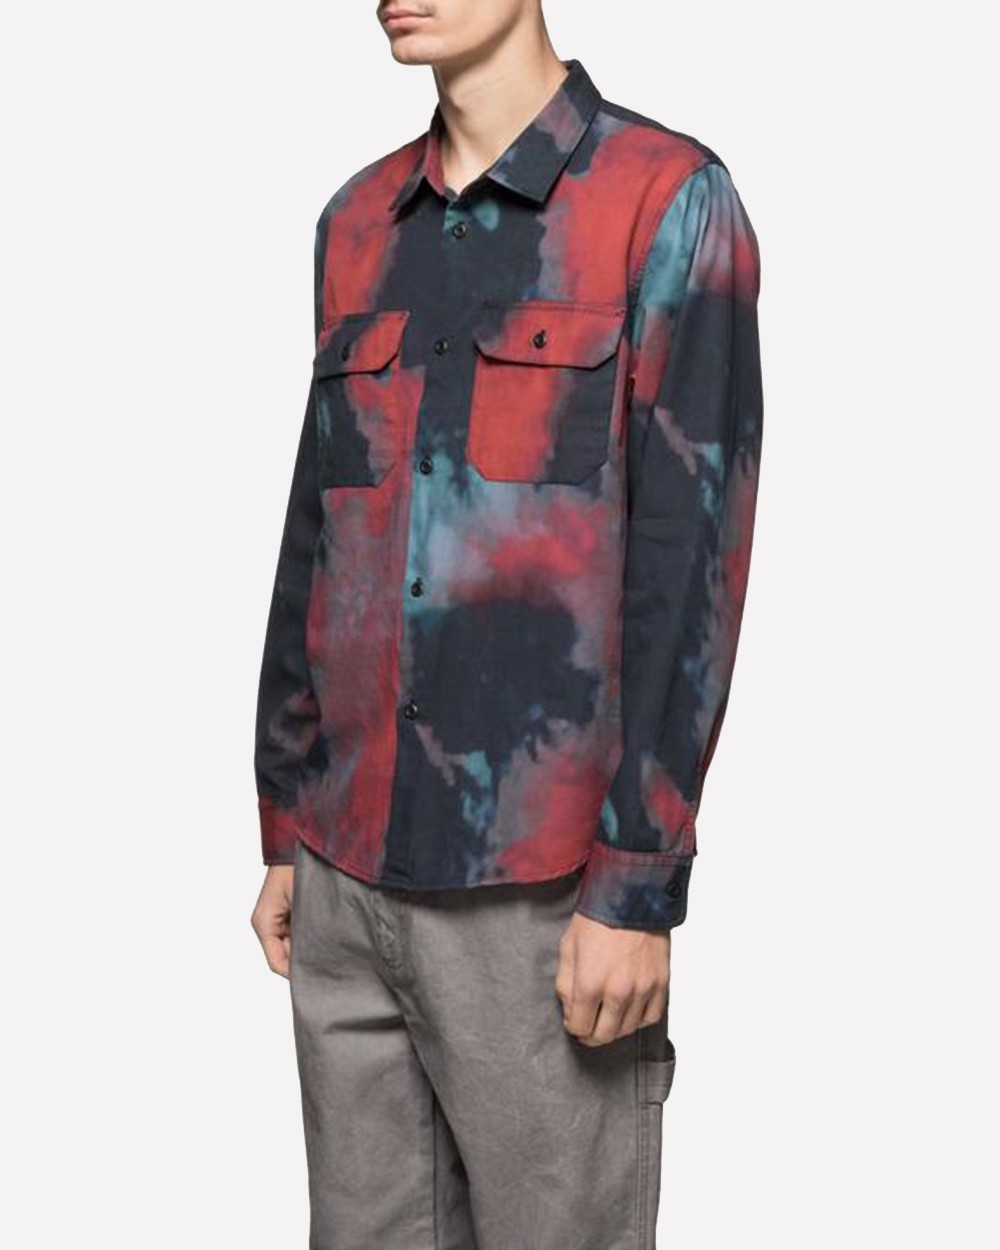 Dark Dye Work Shirt